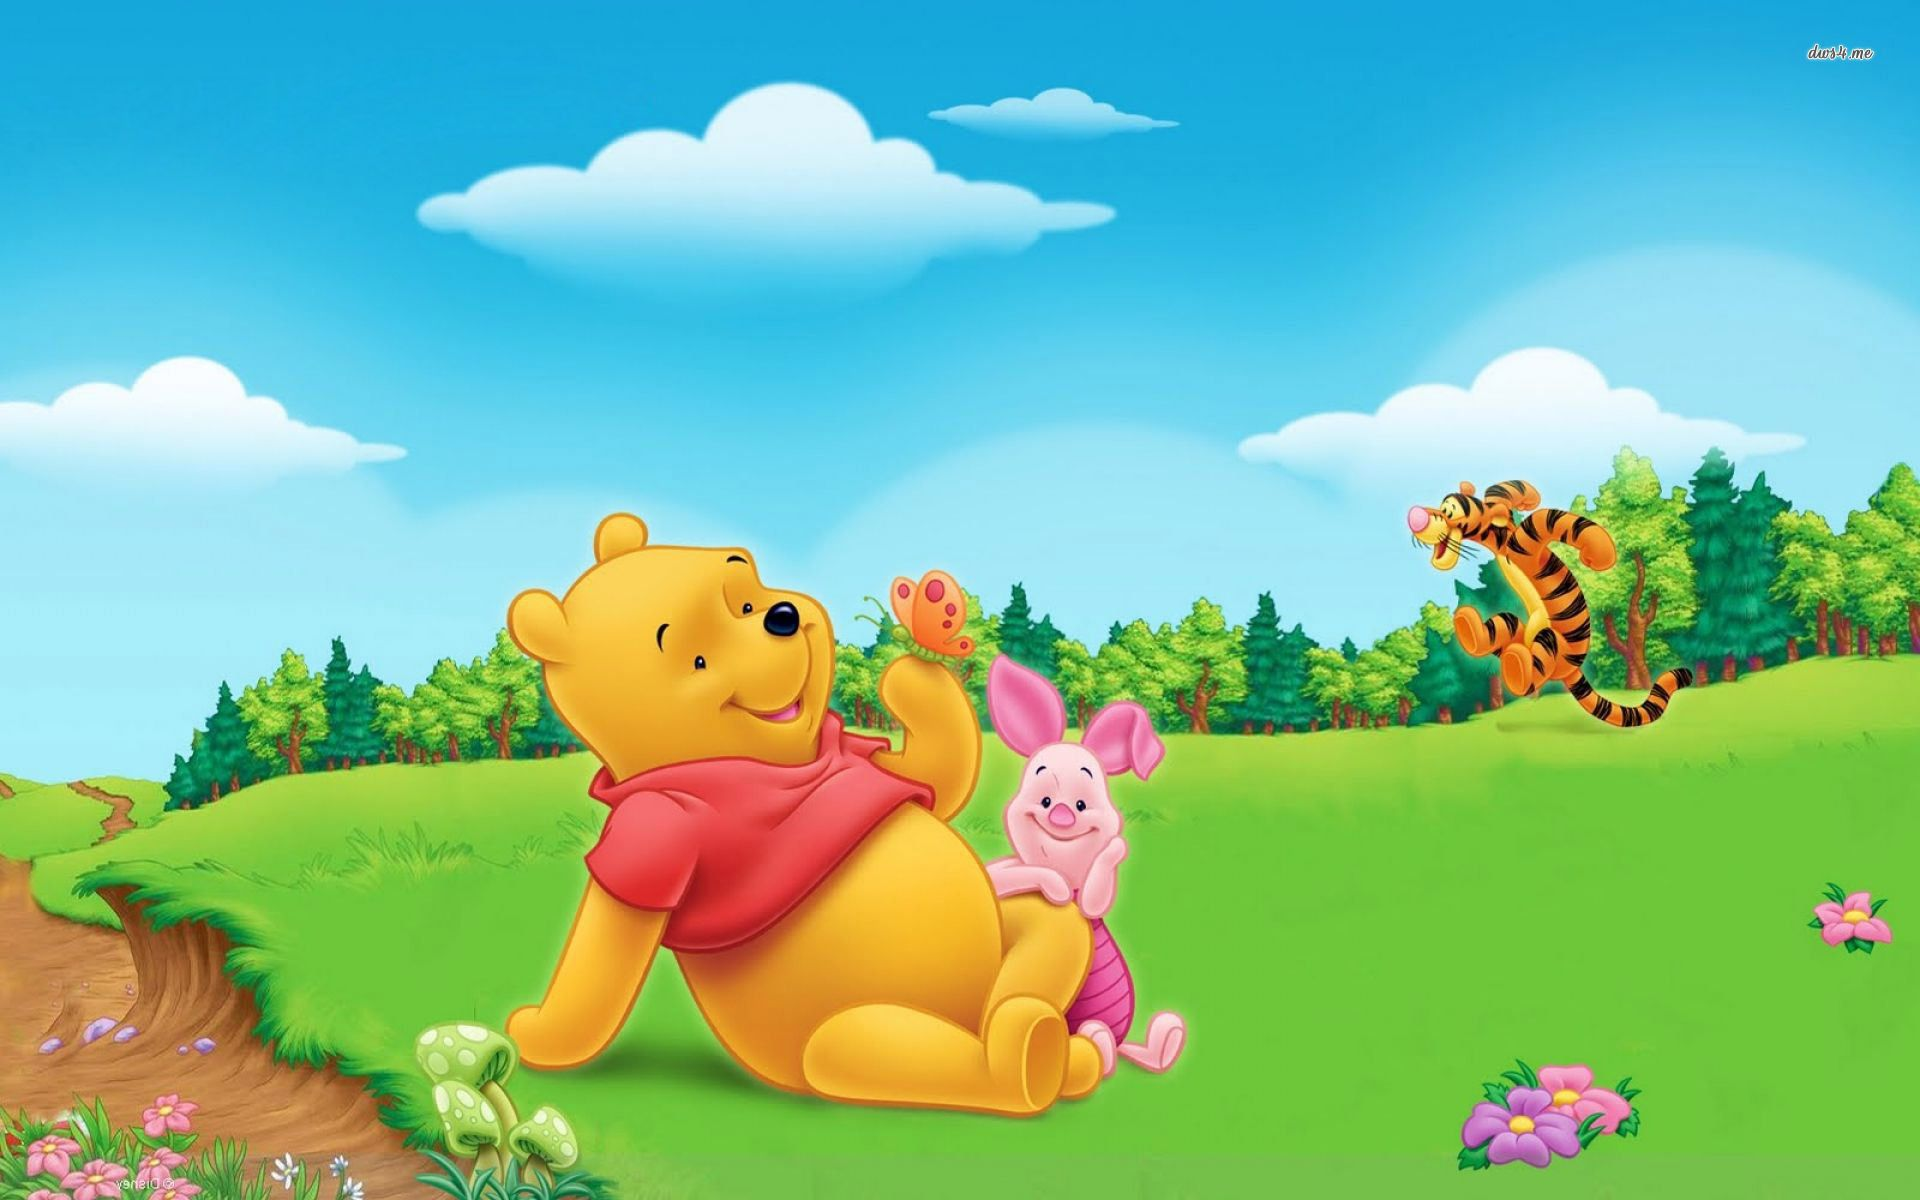 Pin By Tina Lyons On Poohbear 3 Winnie The Pooh Background Cute Winnie The Pooh Winnie The Pooh